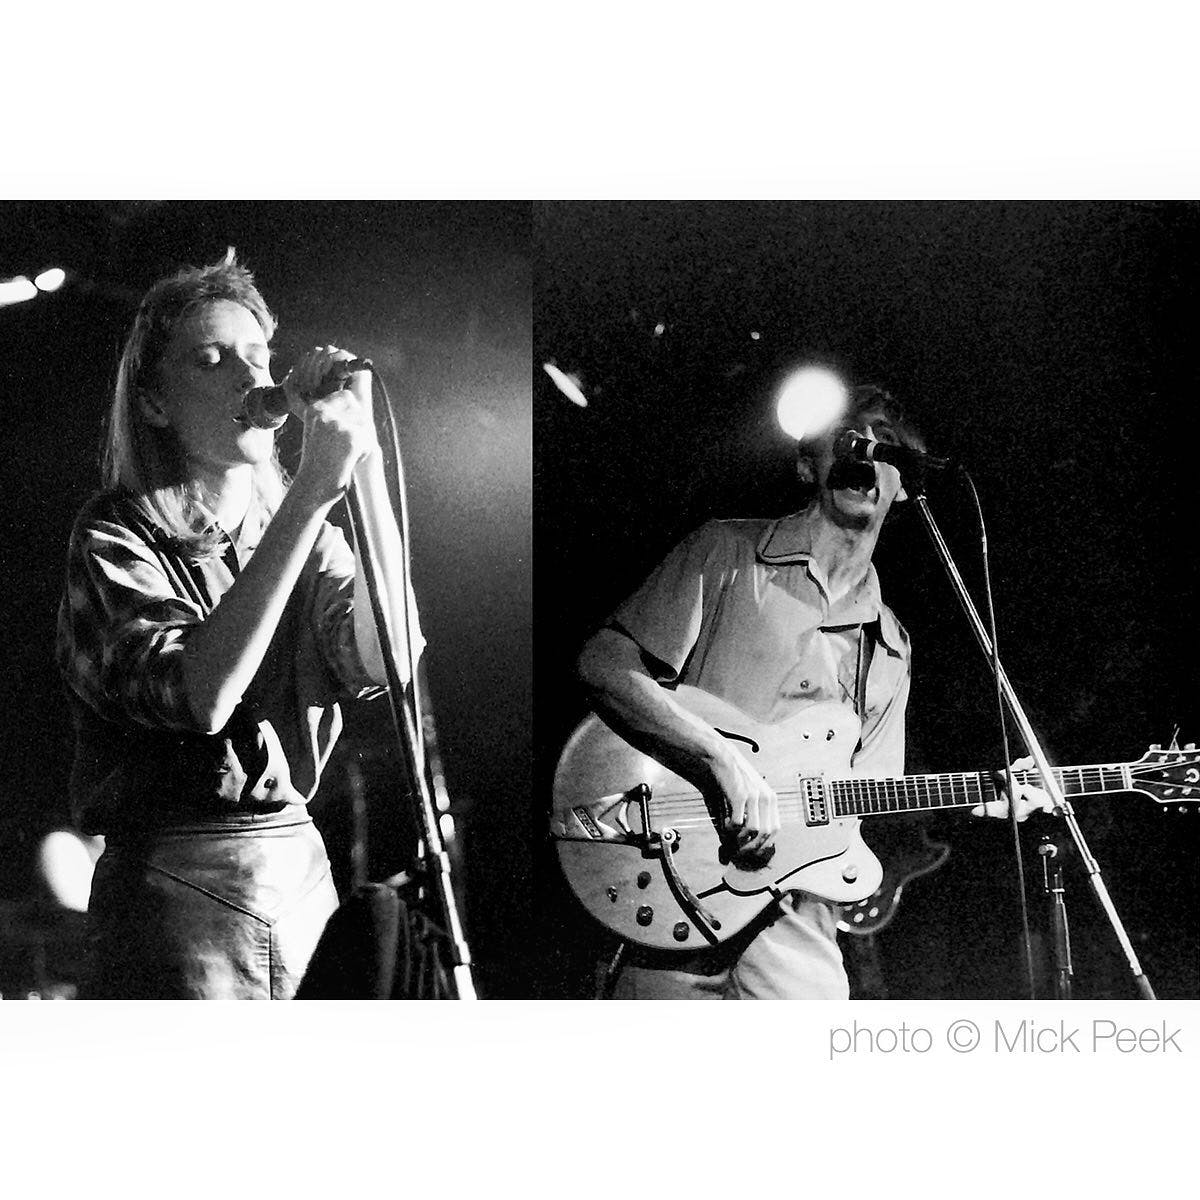 PREFAB SPROUT & THE DAINTEES – 25_01_83